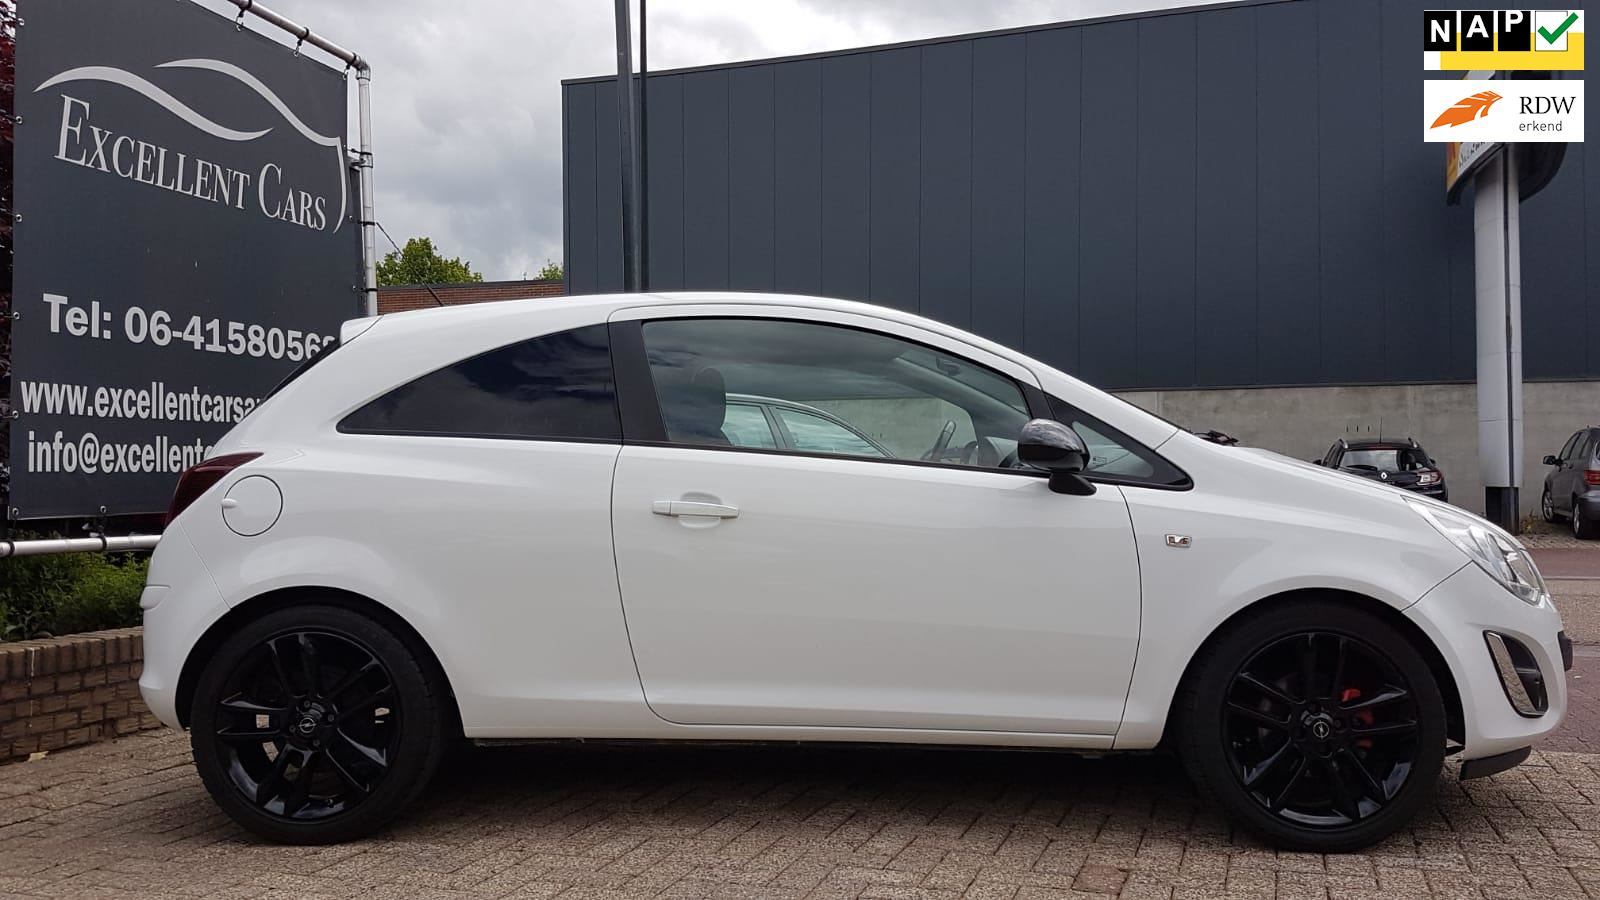 Opel Corsa occasion - Excellent Cars